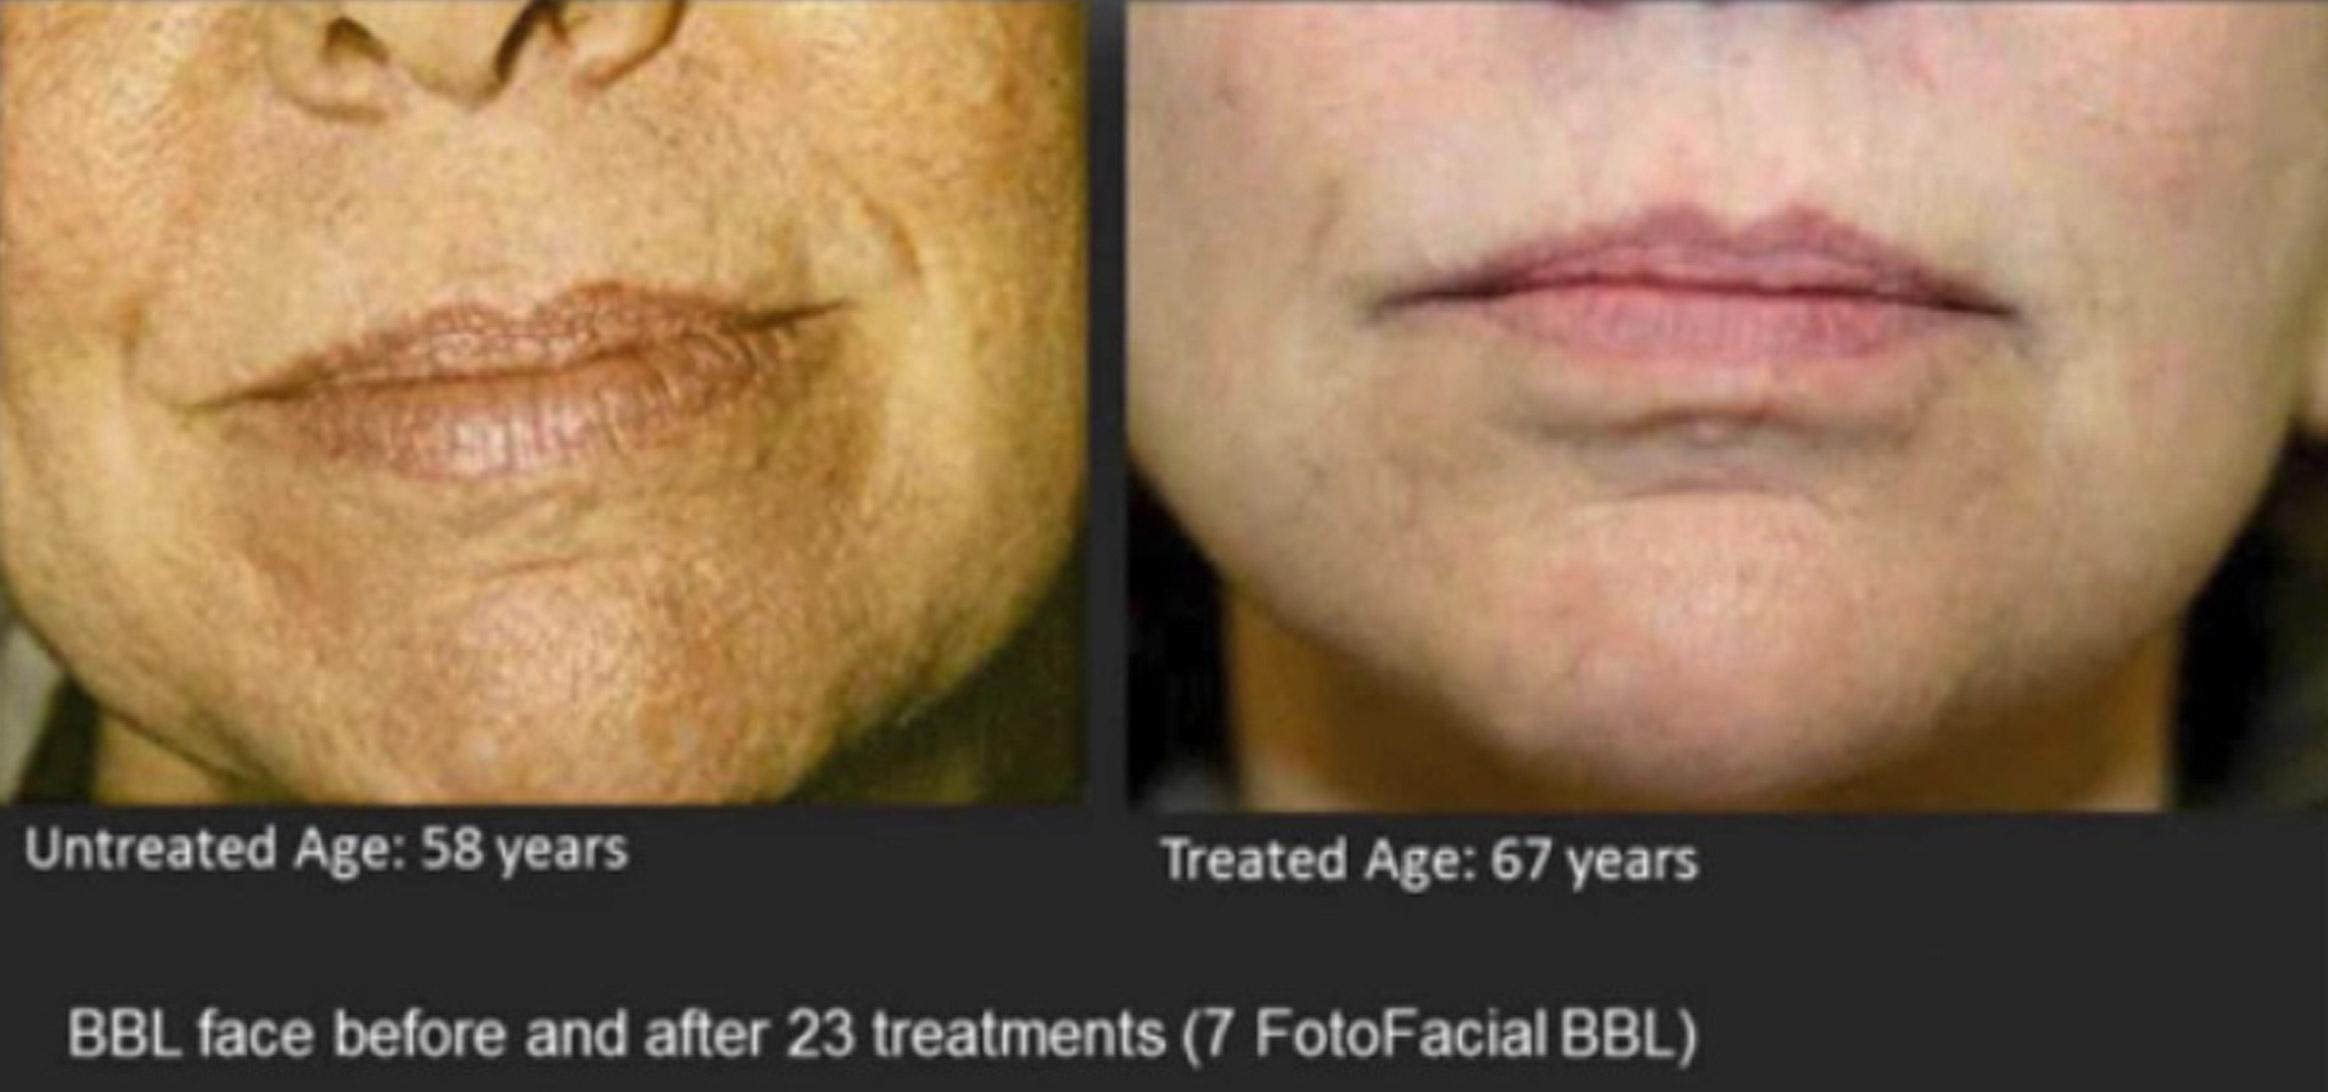 BBL Face before & After